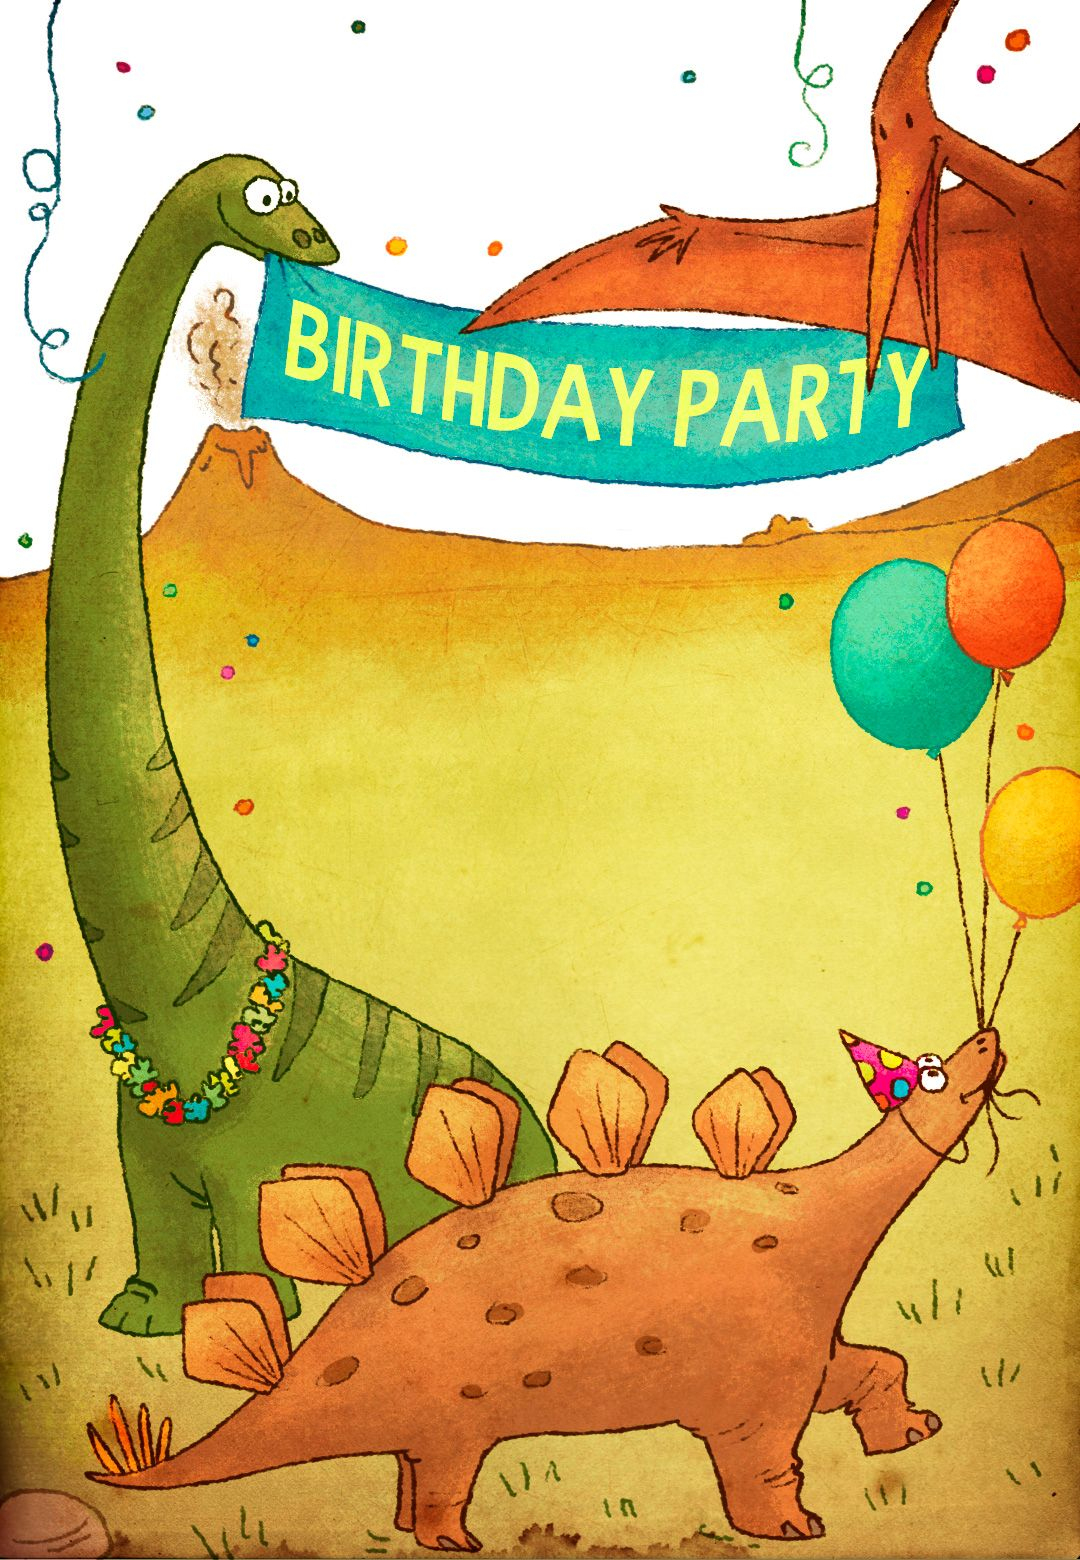 Dinosaurs Birthday Party - Free Printable Birthday Invitation - Free Printable Dinosaur Birthday Invitations